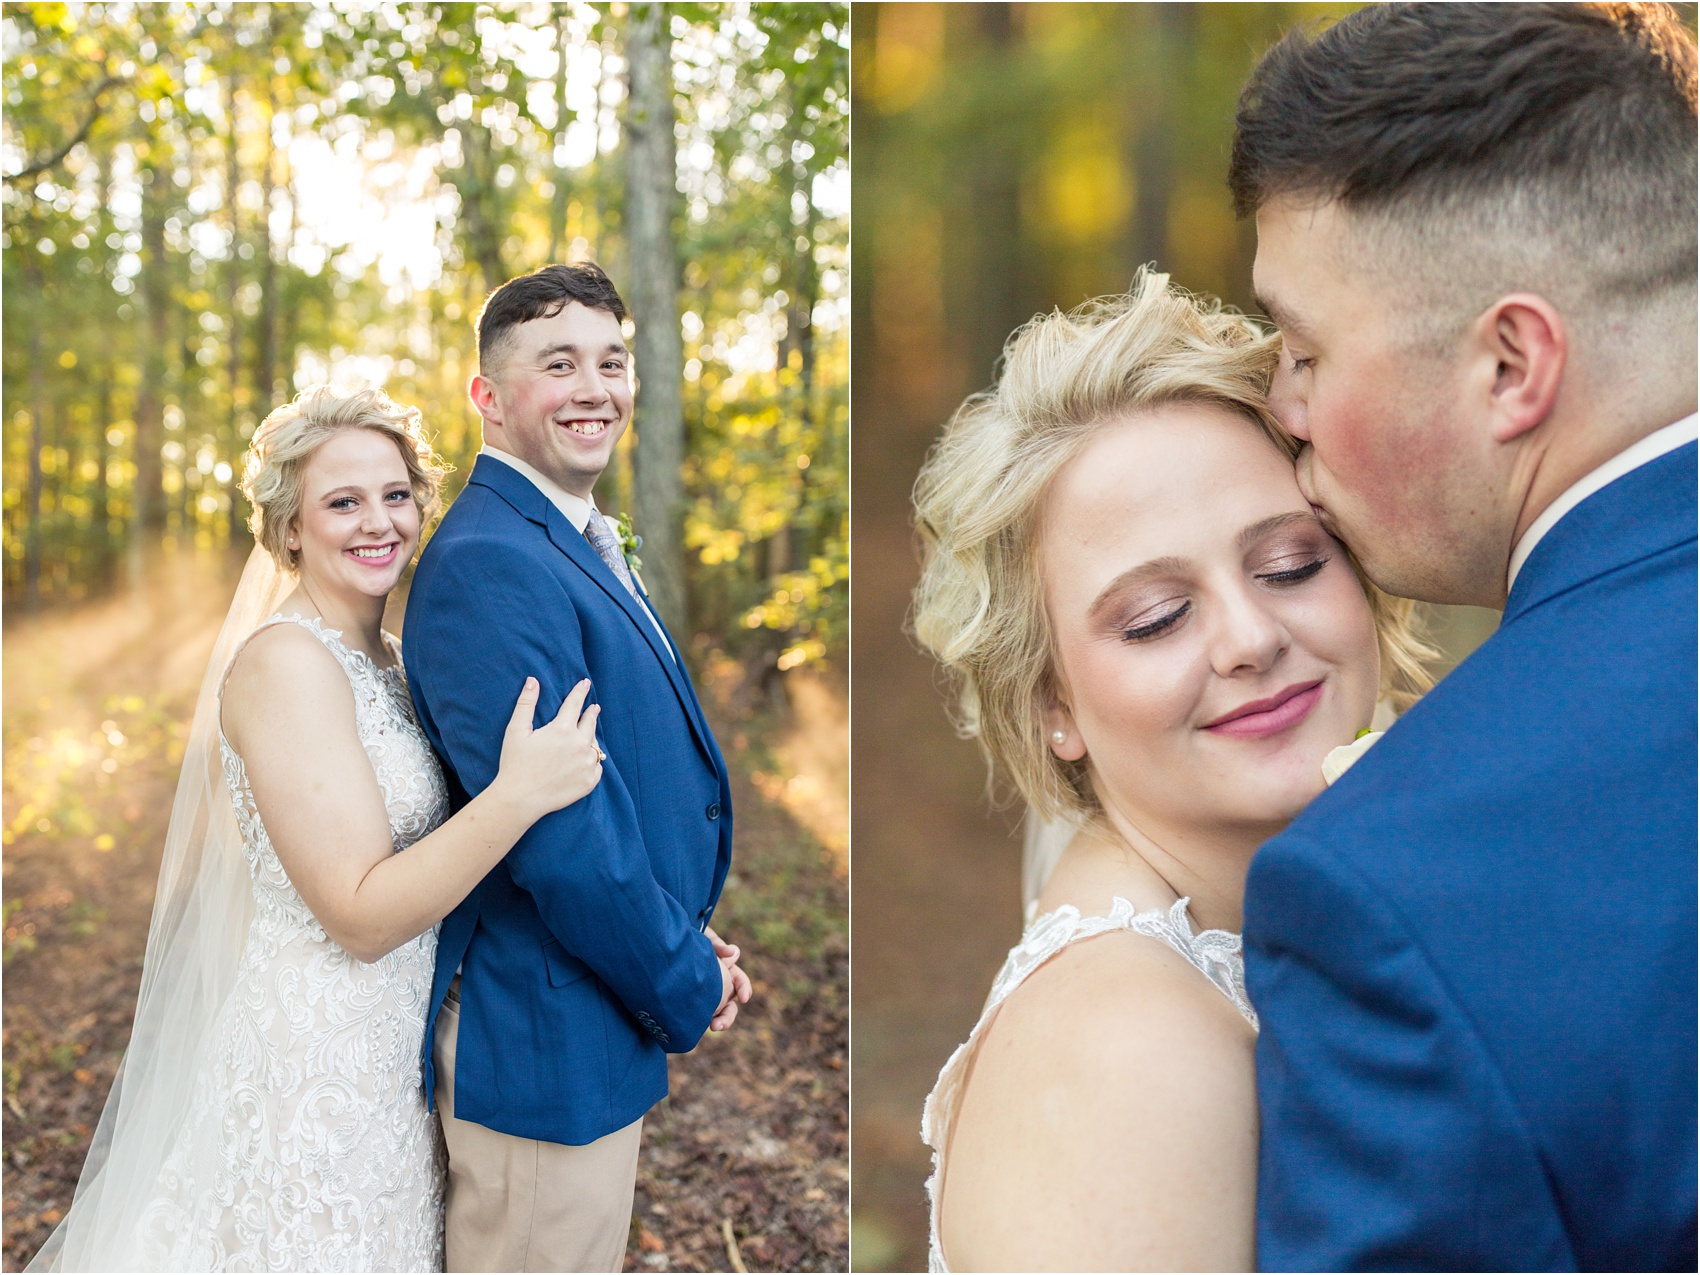 Savannah Eve Photography- Cannon-Gossett Wedding- Sneak Peek-84.jpg